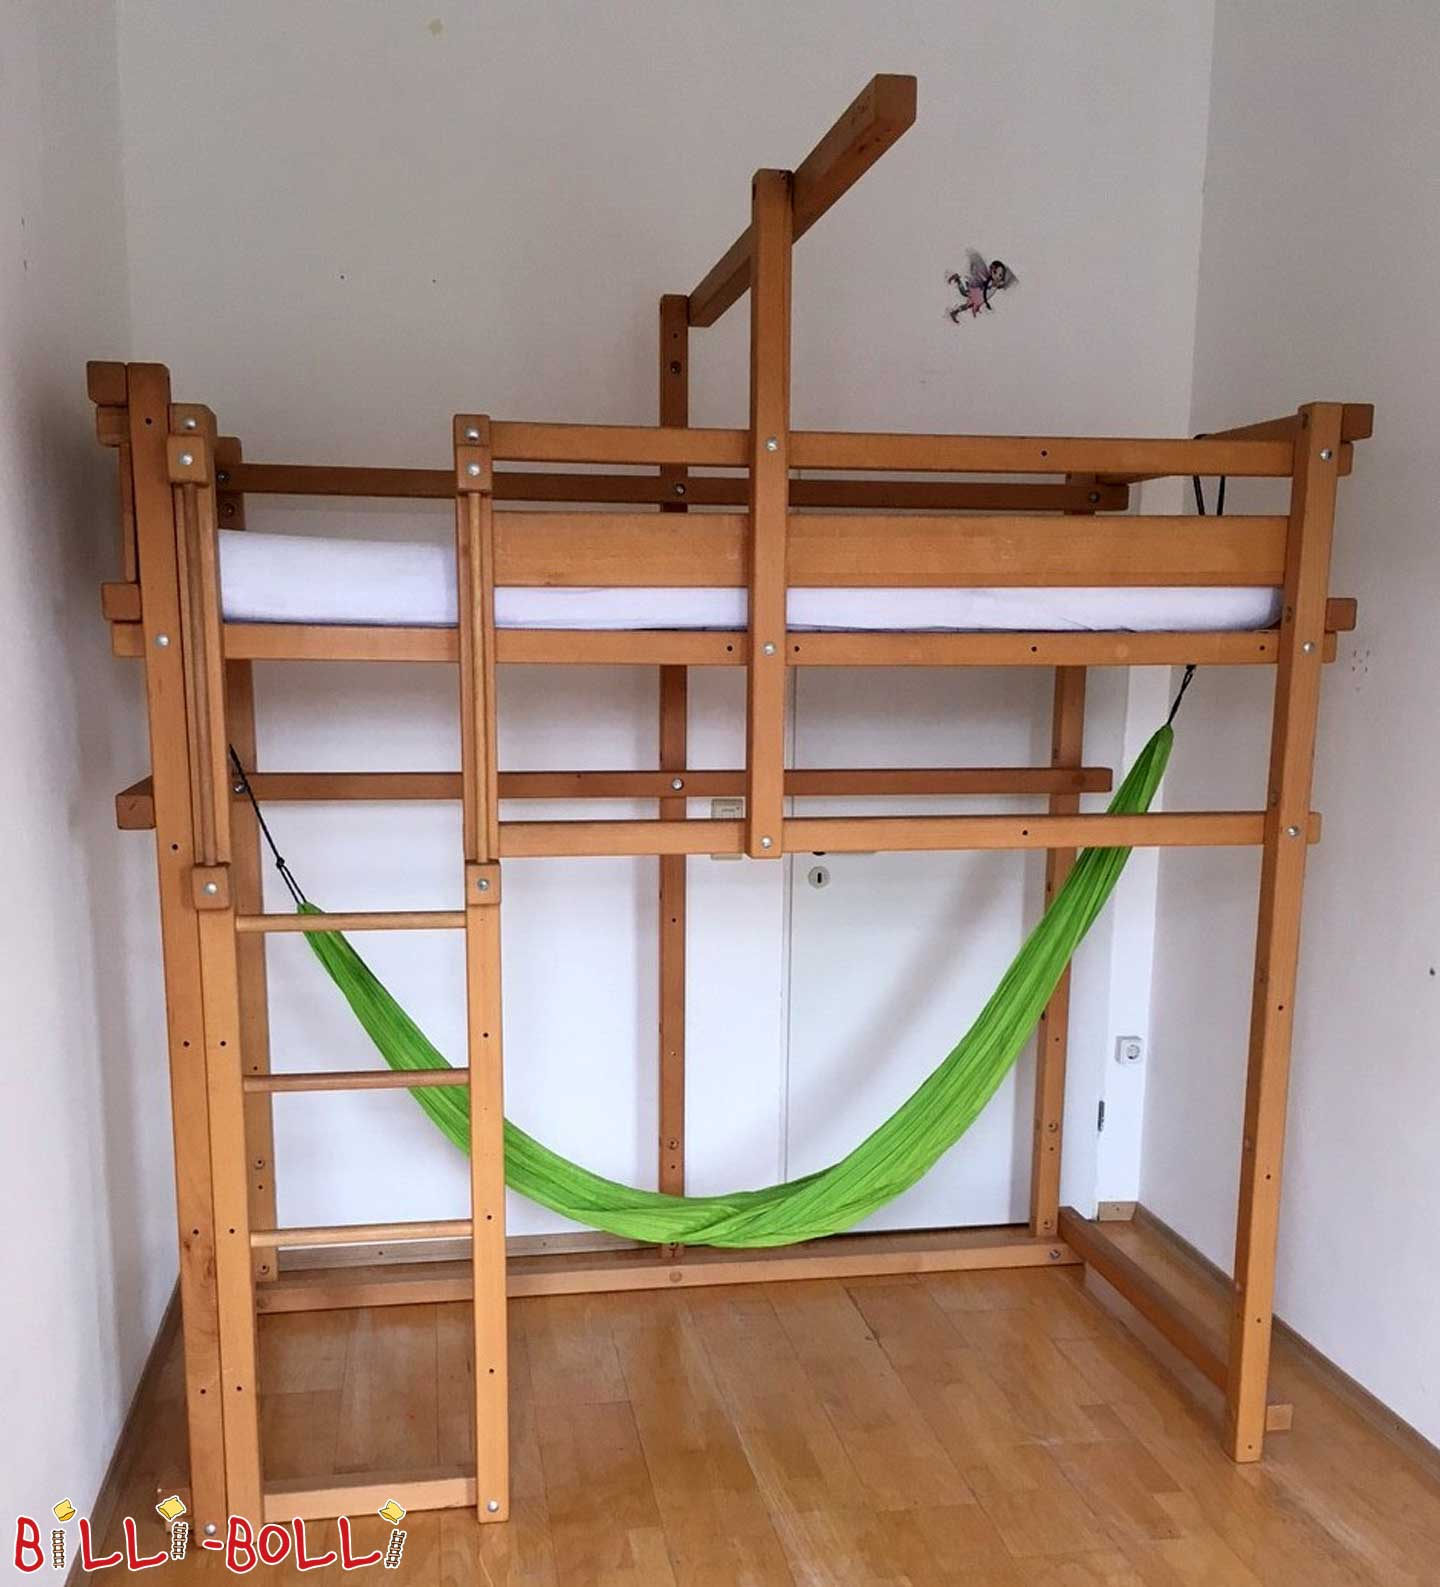 Loft bed growing with 100 x 200 cm, beech oil waxed (second hand loft bed)